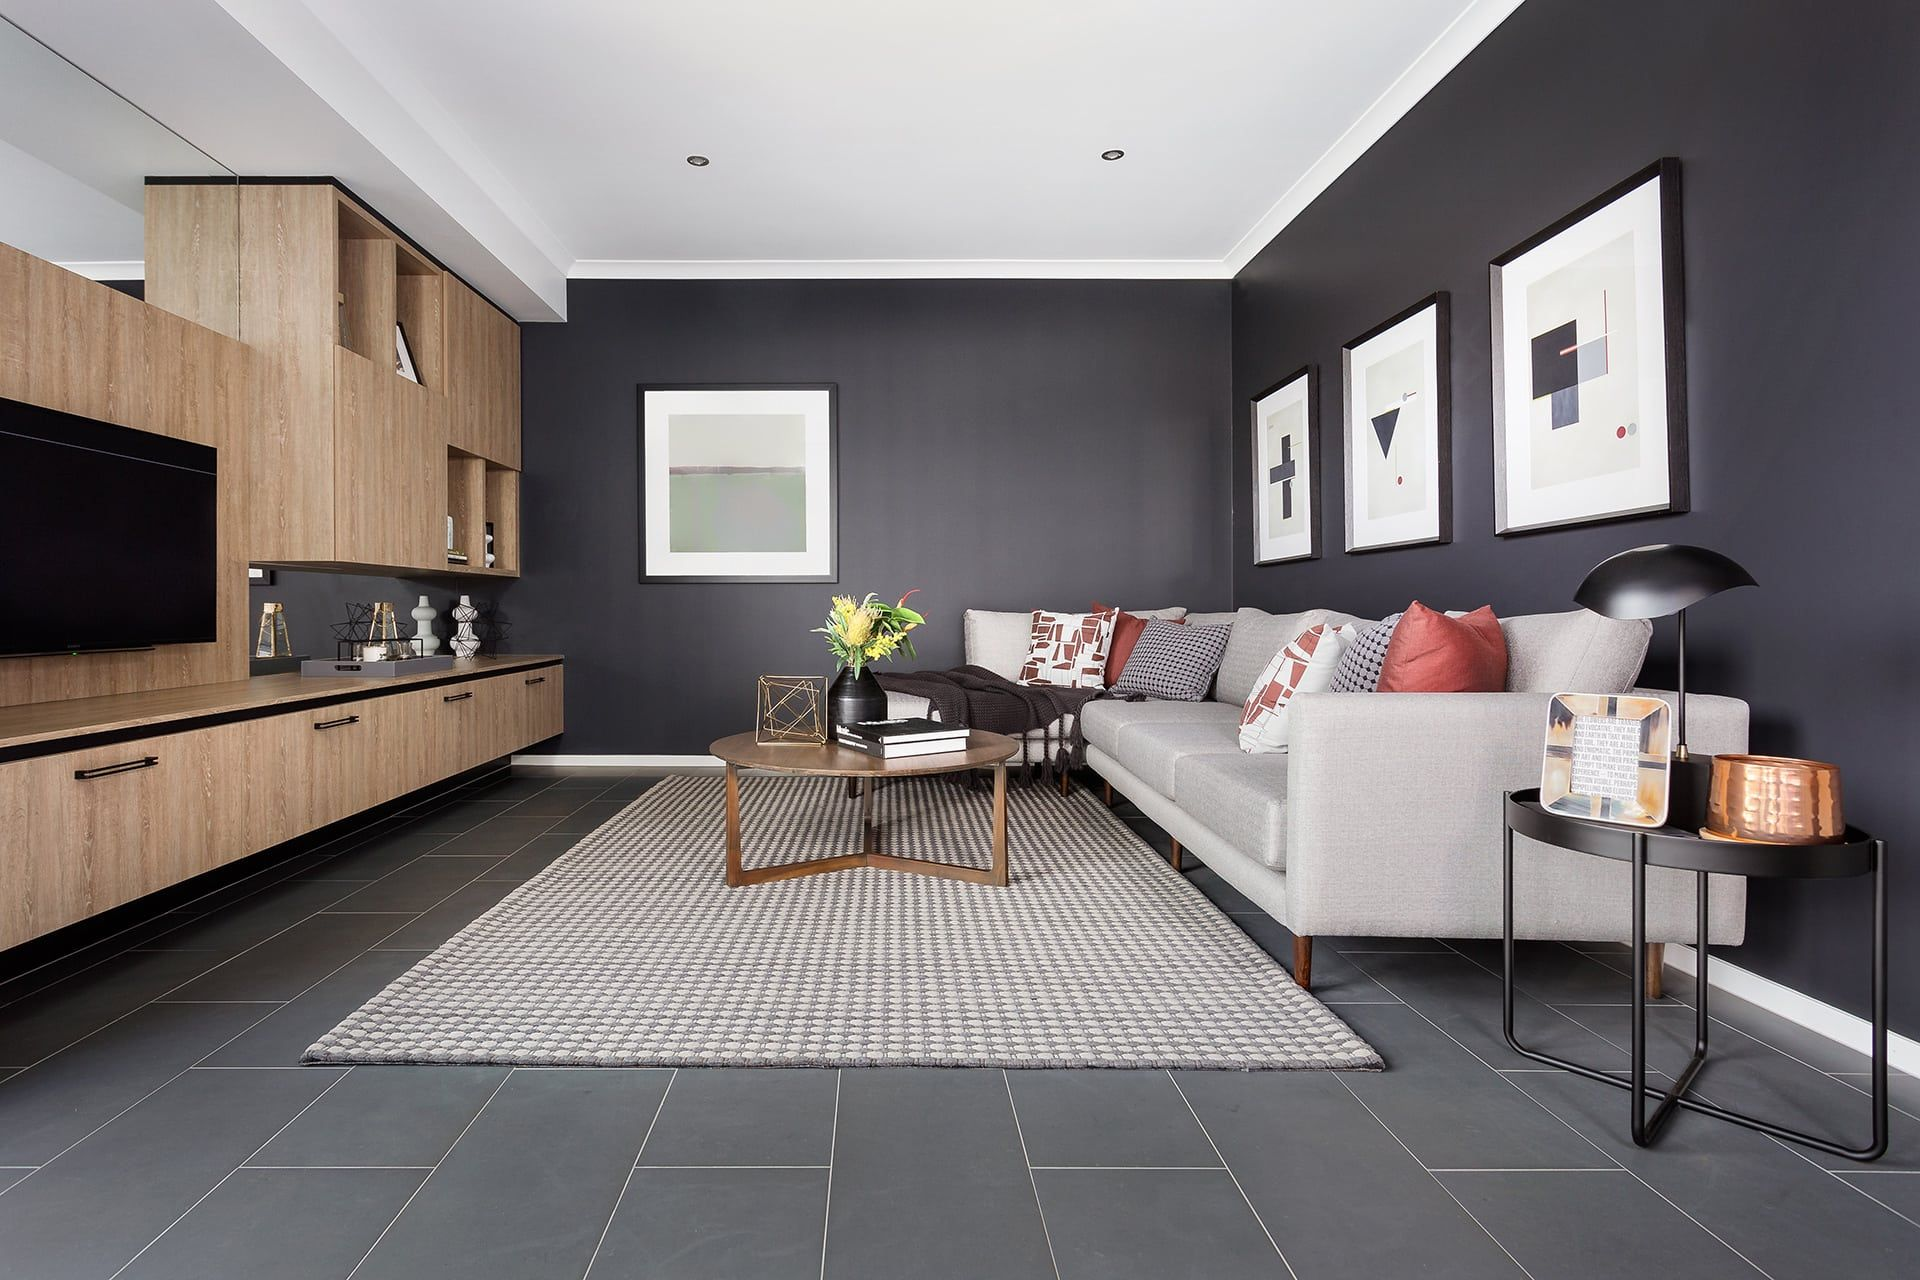 How To Easily Achieve The Modernist Interior Design Style Tlc